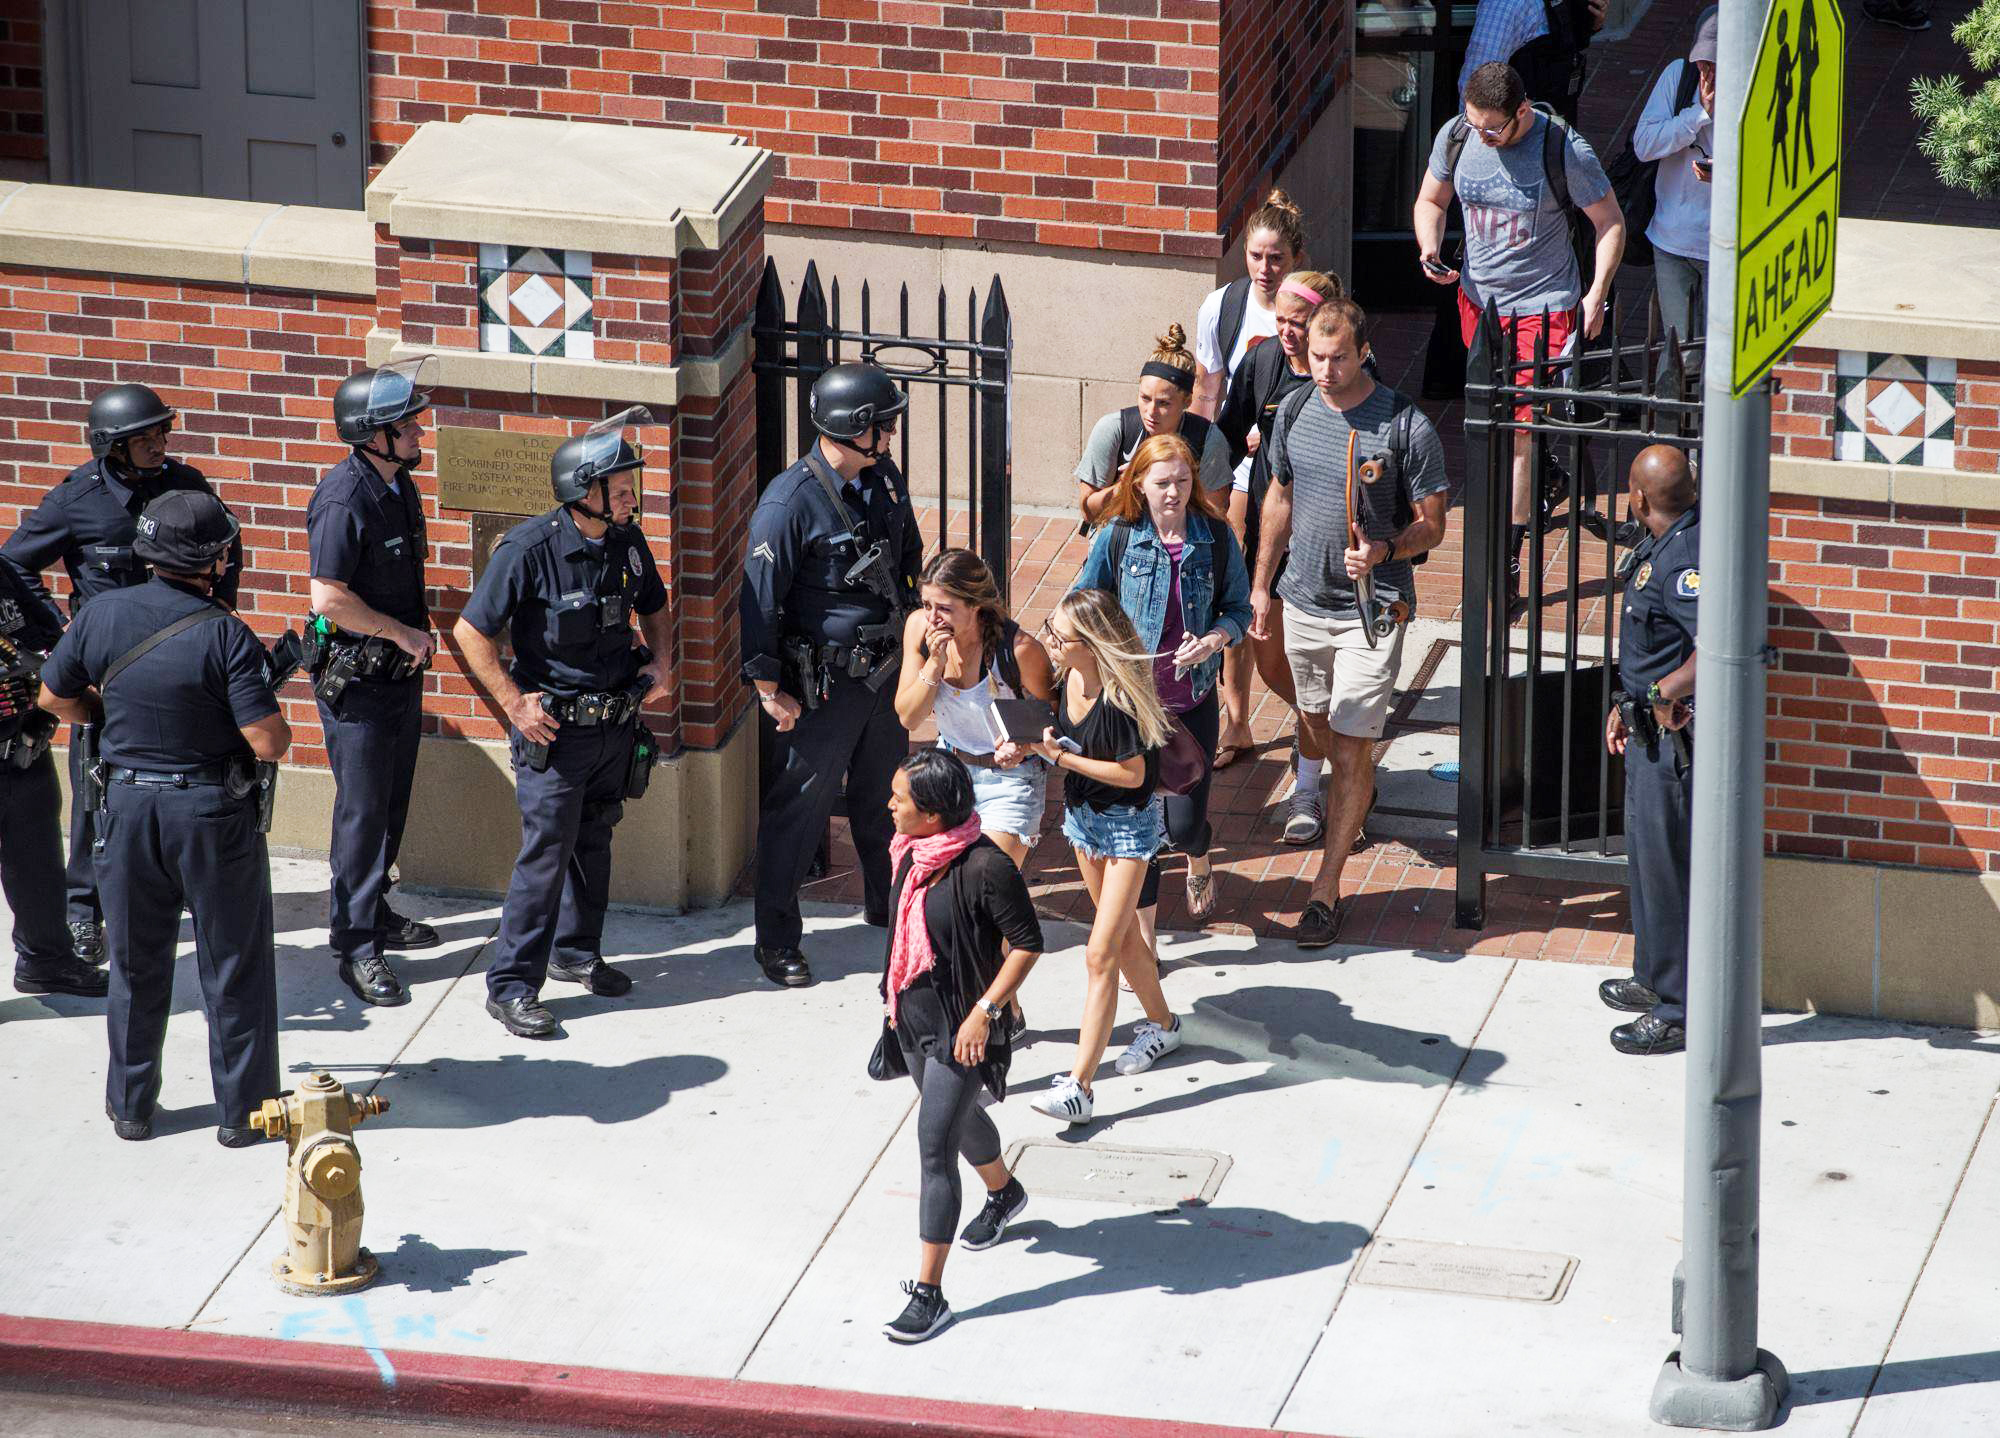 LAPD declares no shooting at USC, clarifying initial reports